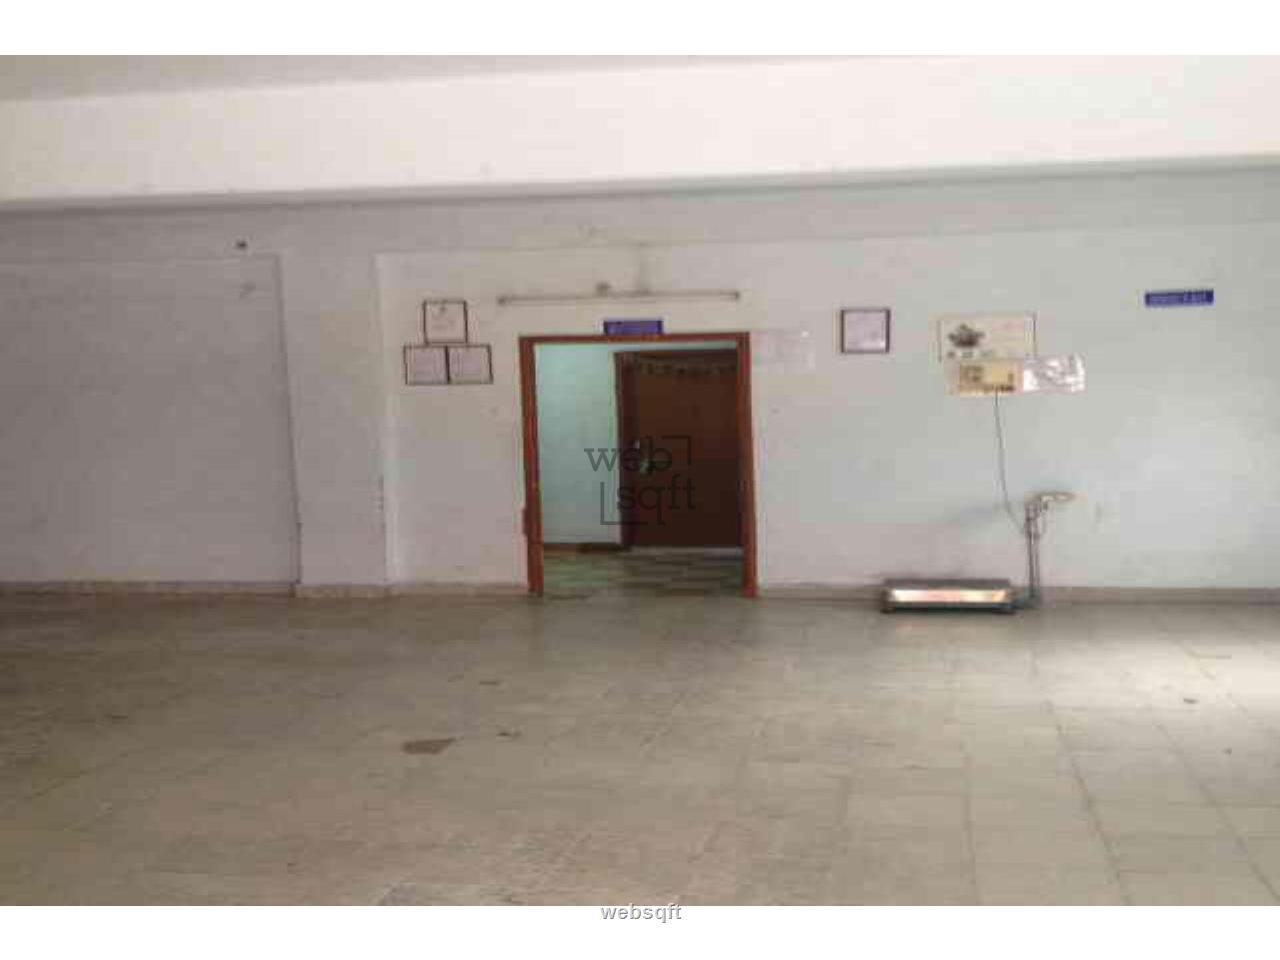 Websqft - Commercial Industrial Estate - Property for Sale - in 13540Sq-ft/Balanagar at Rs 26064500